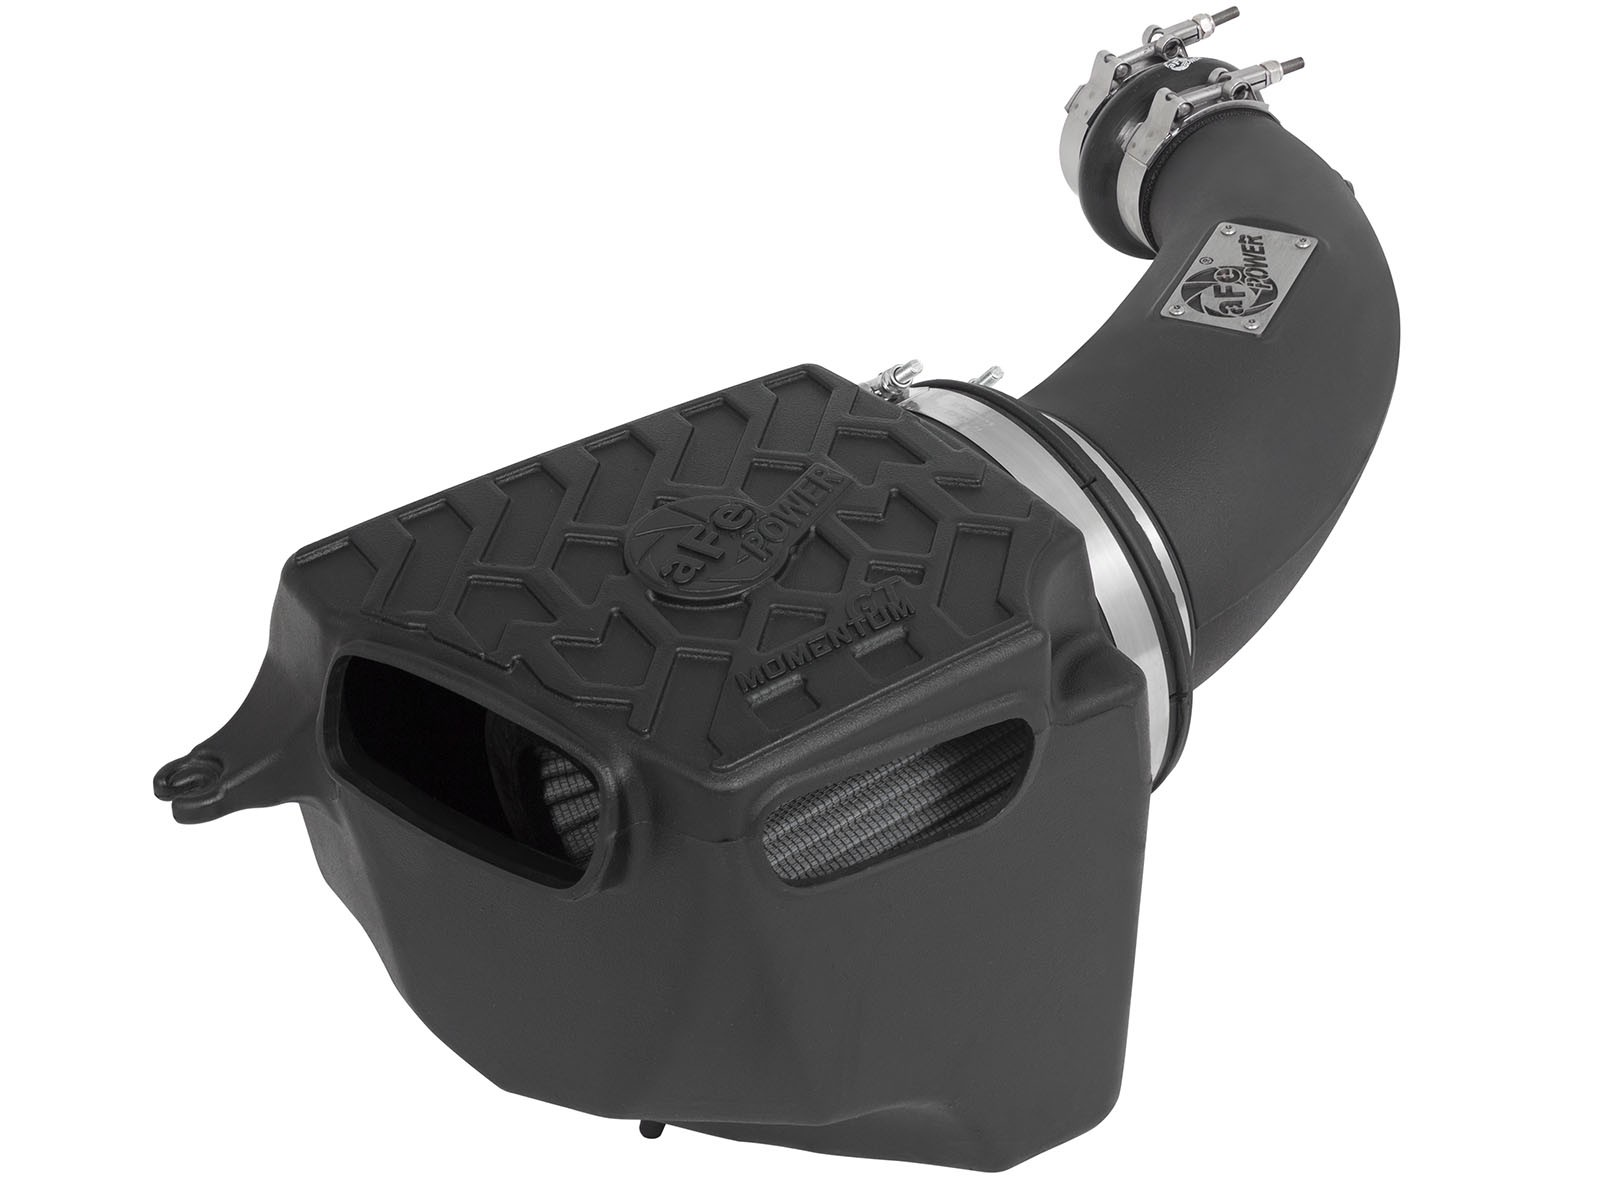 aFe POWER 51-76213 Momentum GT Pro DRY S Cold Air Intake System